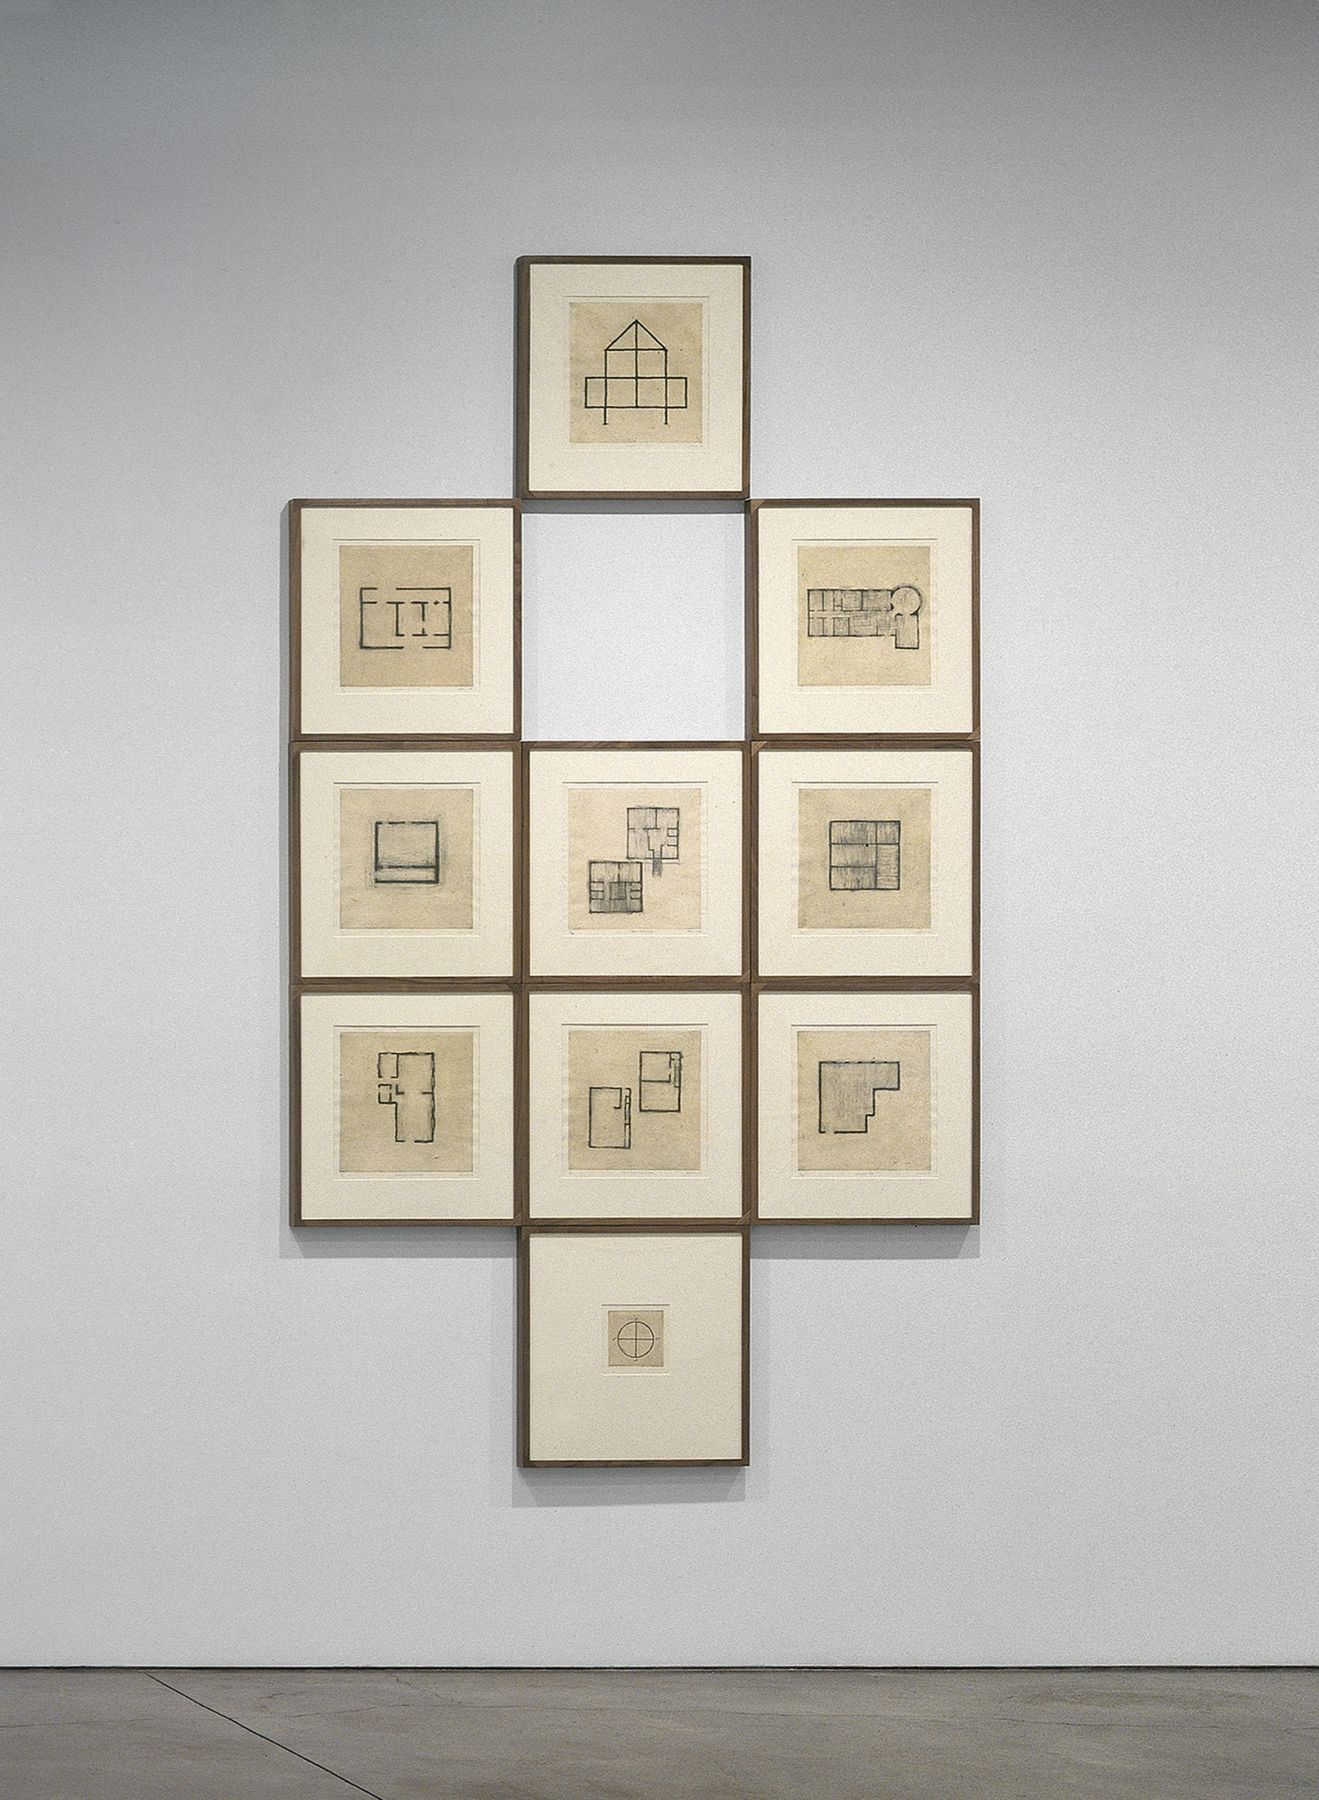 Zarina, Homes I Made/A Life in Nine Lines, 1997